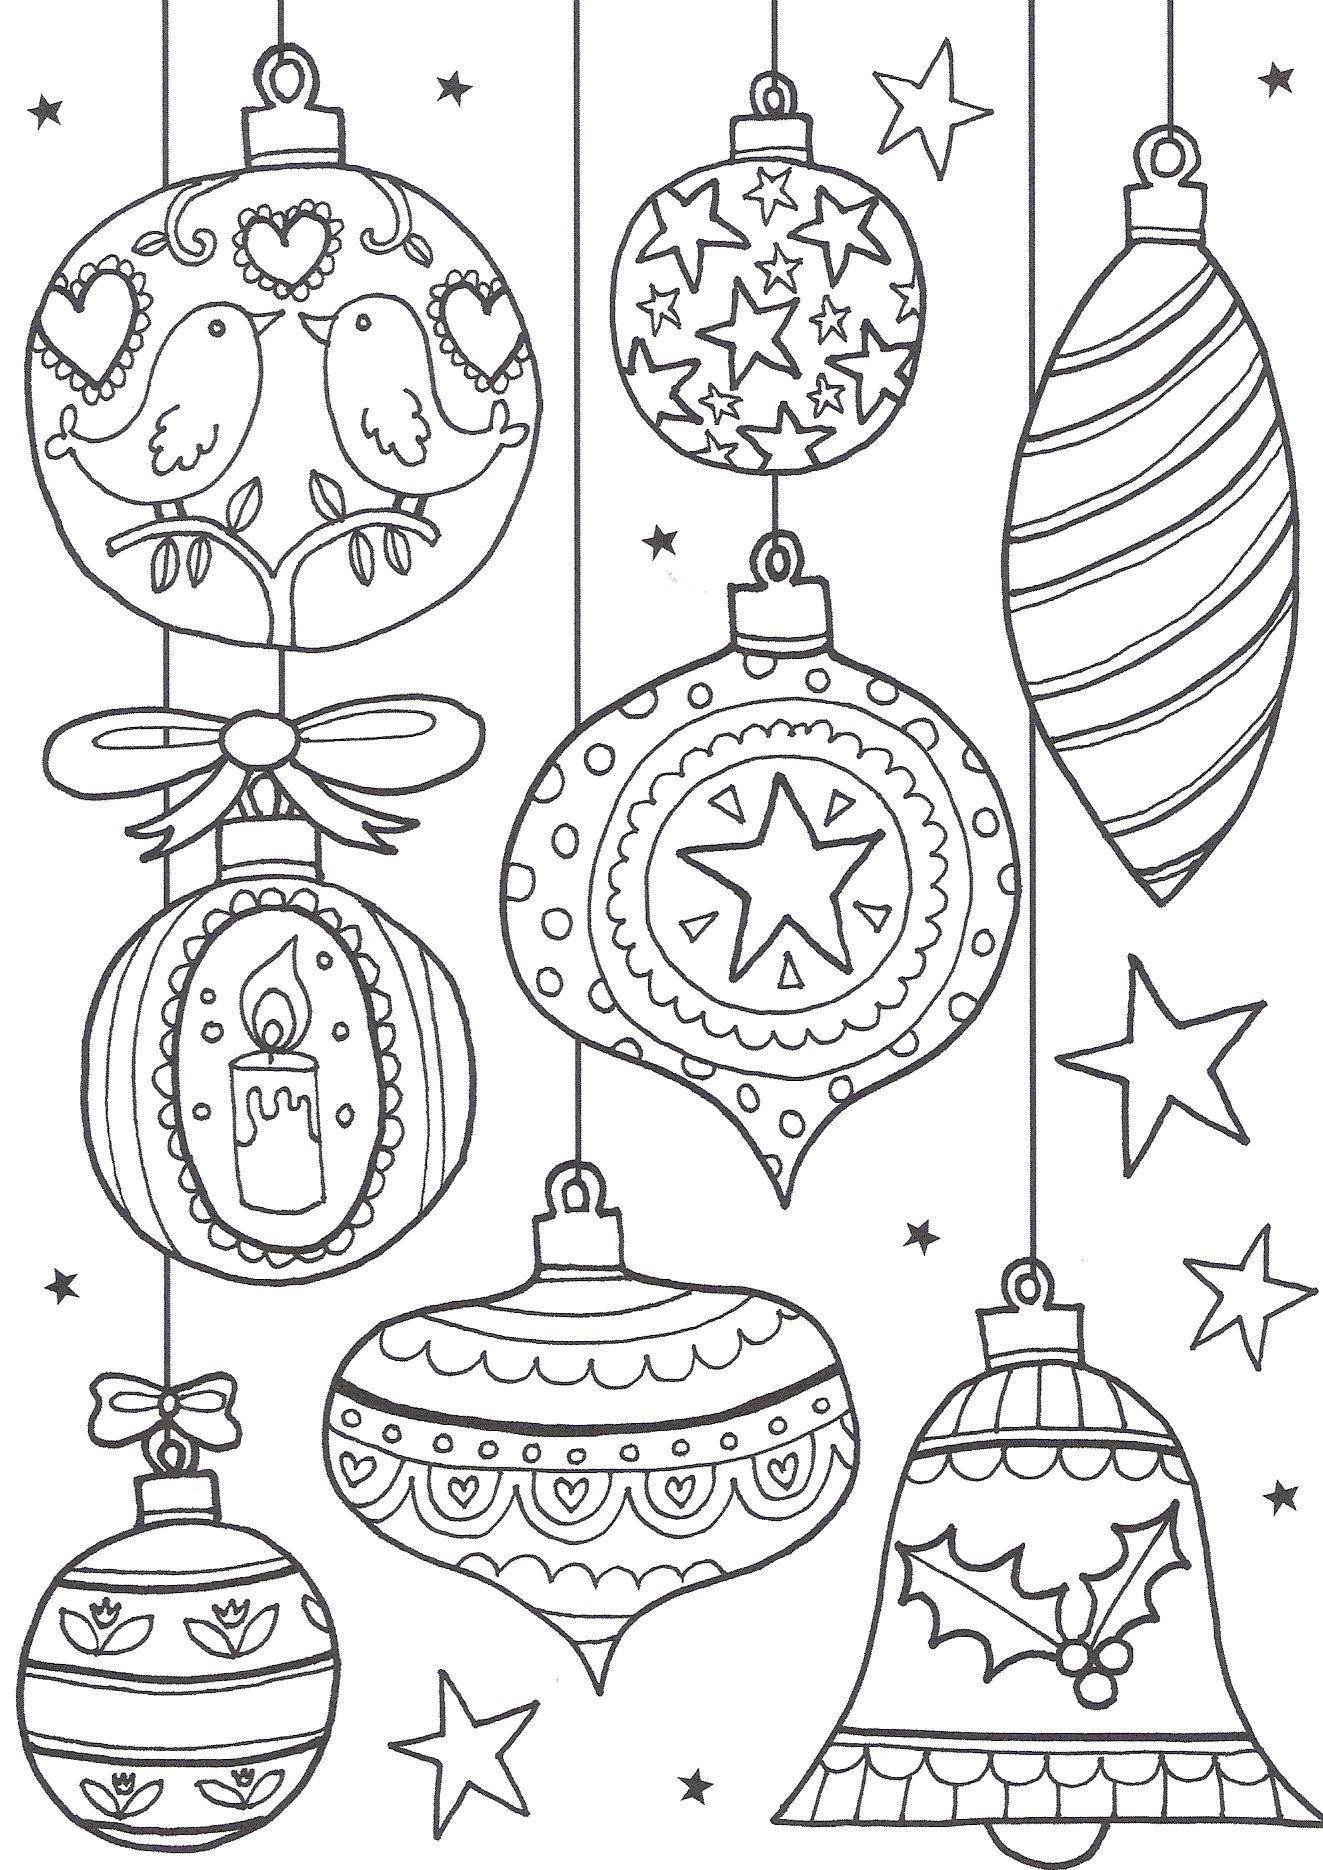 Coloring Pages For Christmas Adults With Free Colouring The Ultimate Roundup